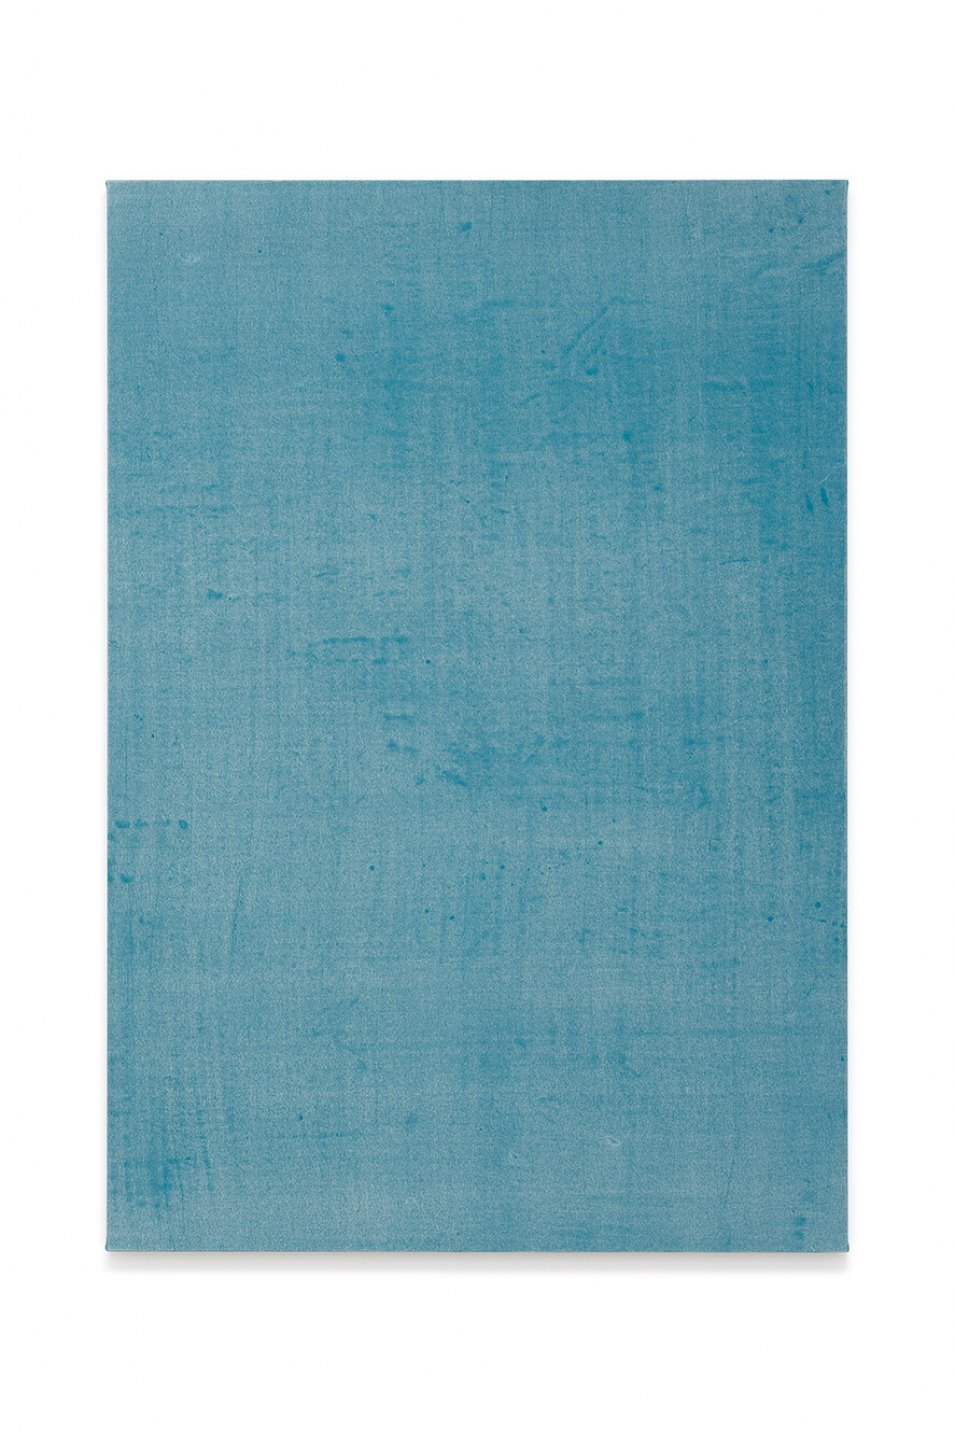 Francesco João Scavarda, <em>untitled (disturbing blue)</em>, 2017, gouache on raw canvas, 145 × 100 × 4 cm - Mendes Wood DM